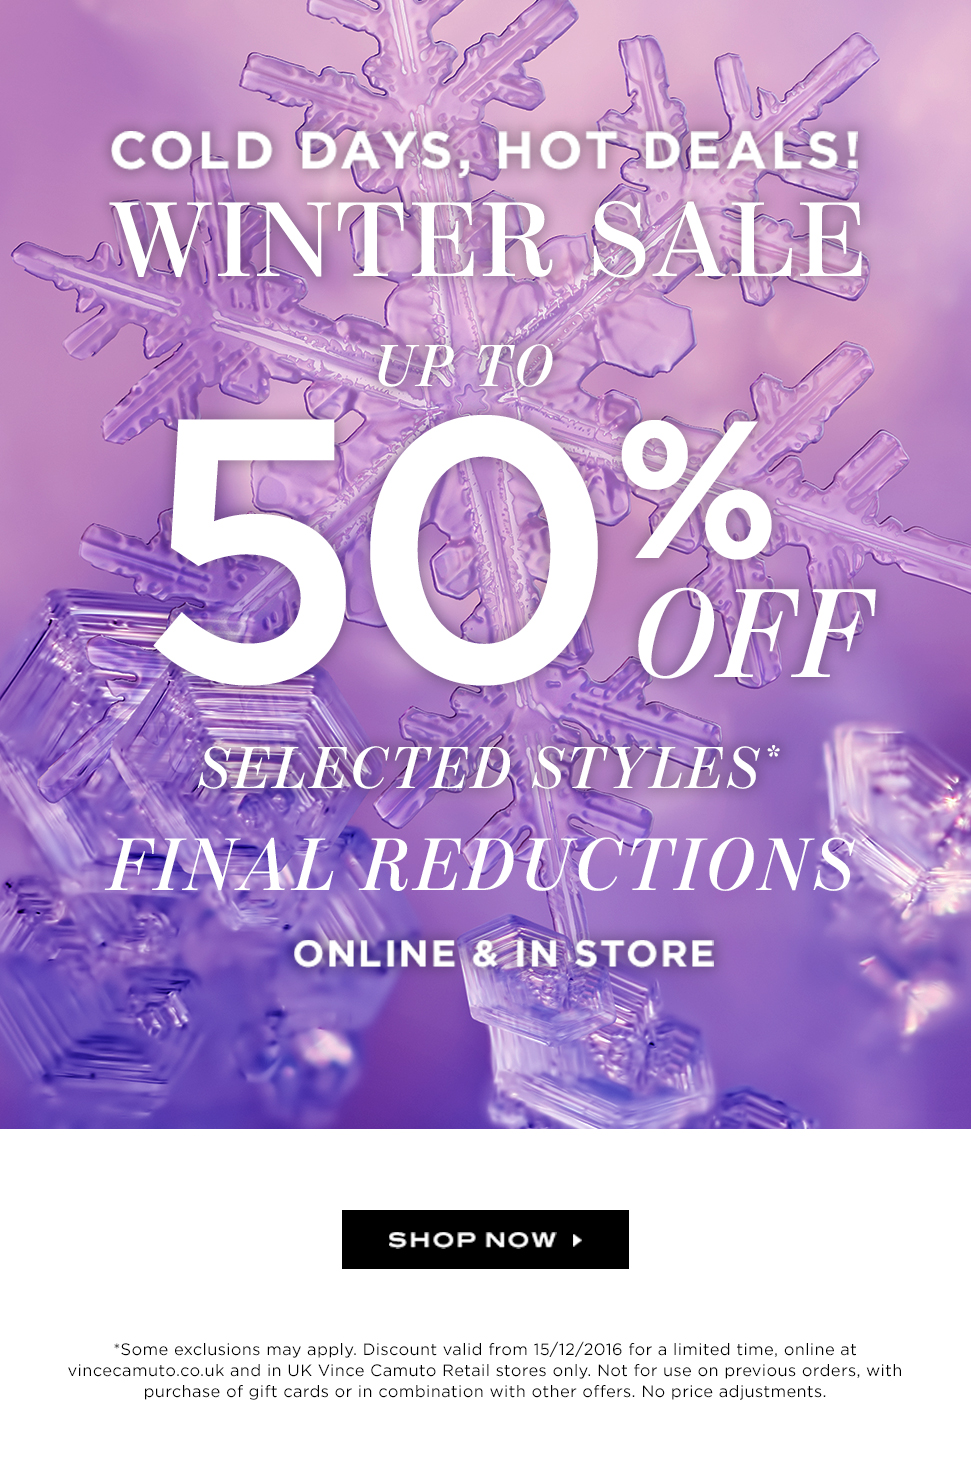 Winter sale. Up to 50% off selected styles. Online & in store